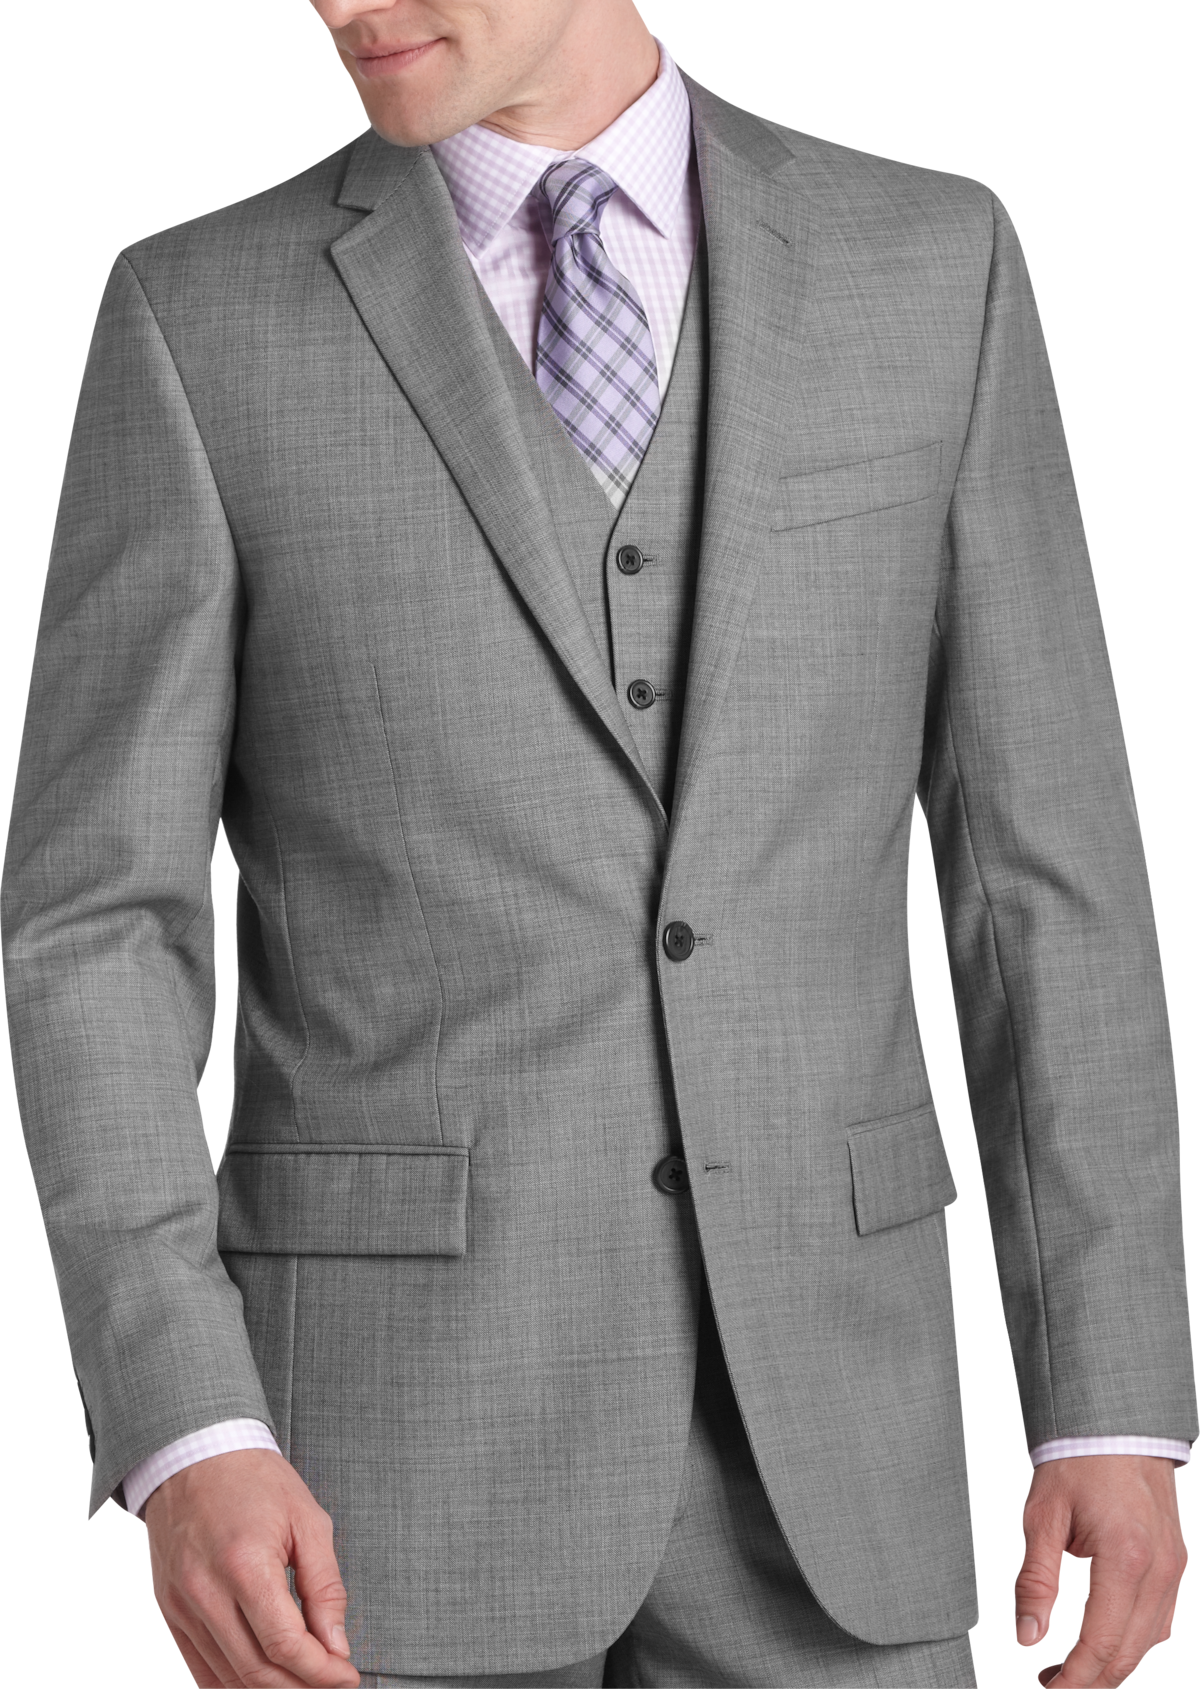 Egara Gray Sharkskin Slim Fit Suit Separates Coat Men S Suits